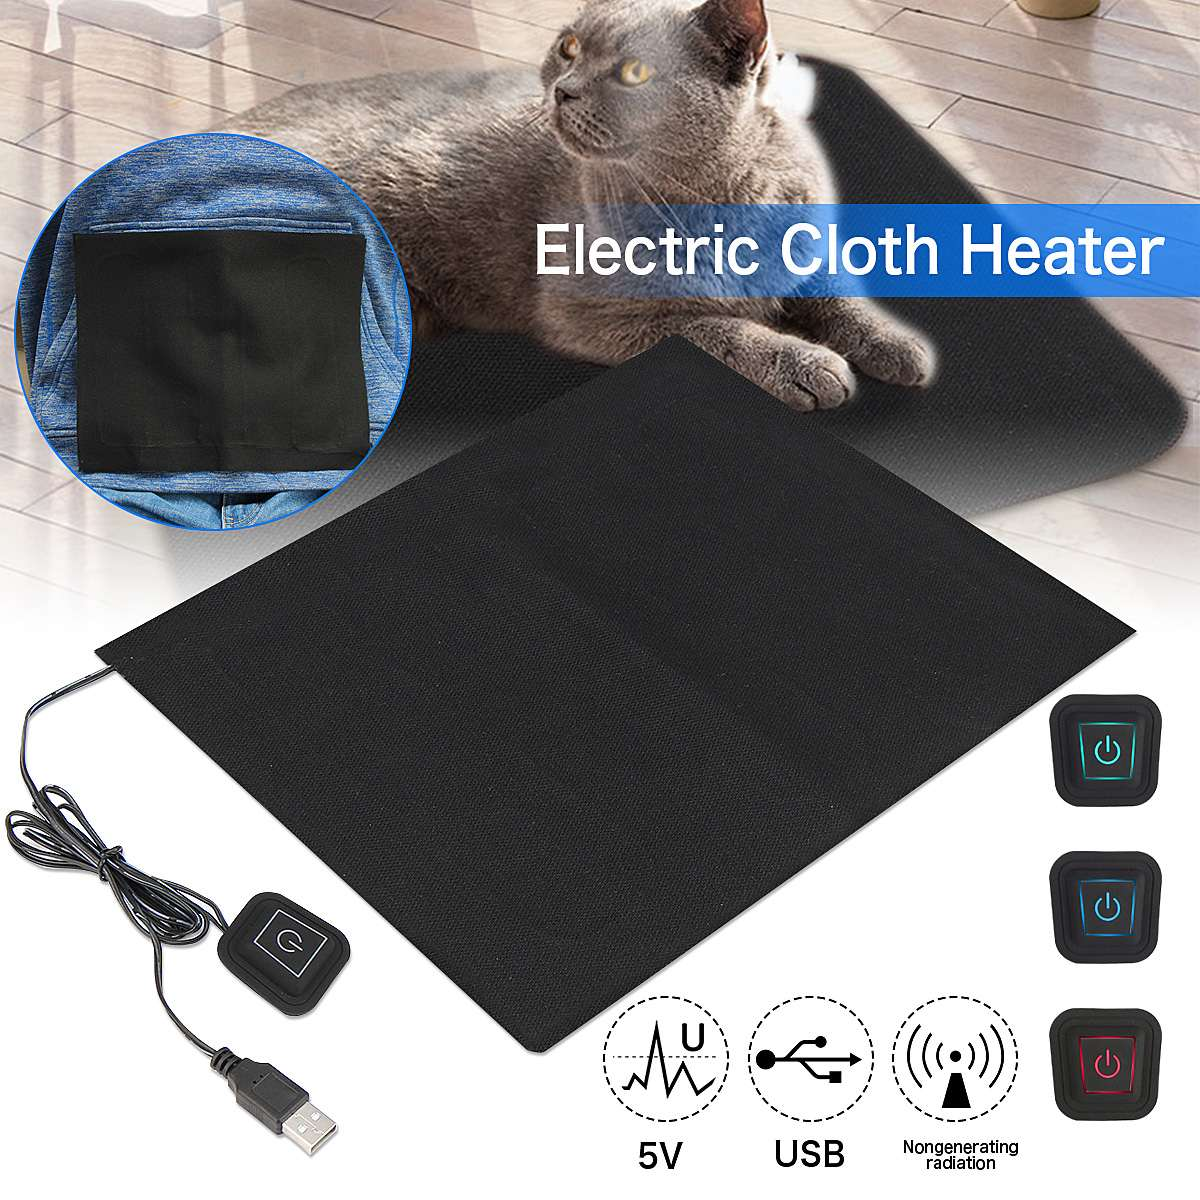 5V USB Electric Clothes Heater Sheet, Winter Heated For Cloth Waist Foot Insoles, Women Men Keep Warm Hand Warmer Heating Tablet 5v usb electric clothes heater sheet adjustable temperature winter heated gloves for cloth pet heating pad waist warmer tablet